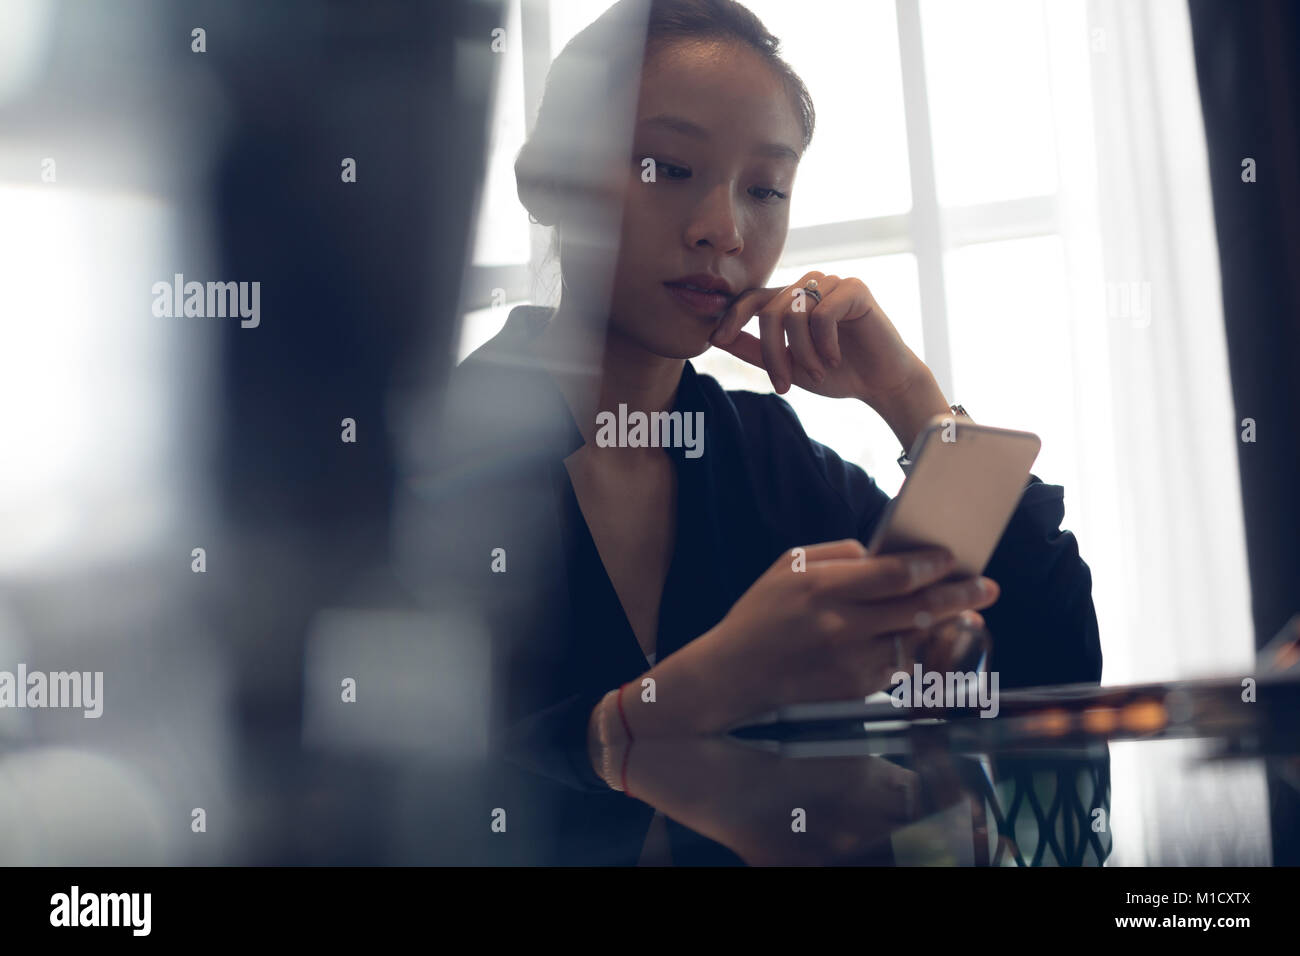 Woman using mobile phone at table - Stock Image